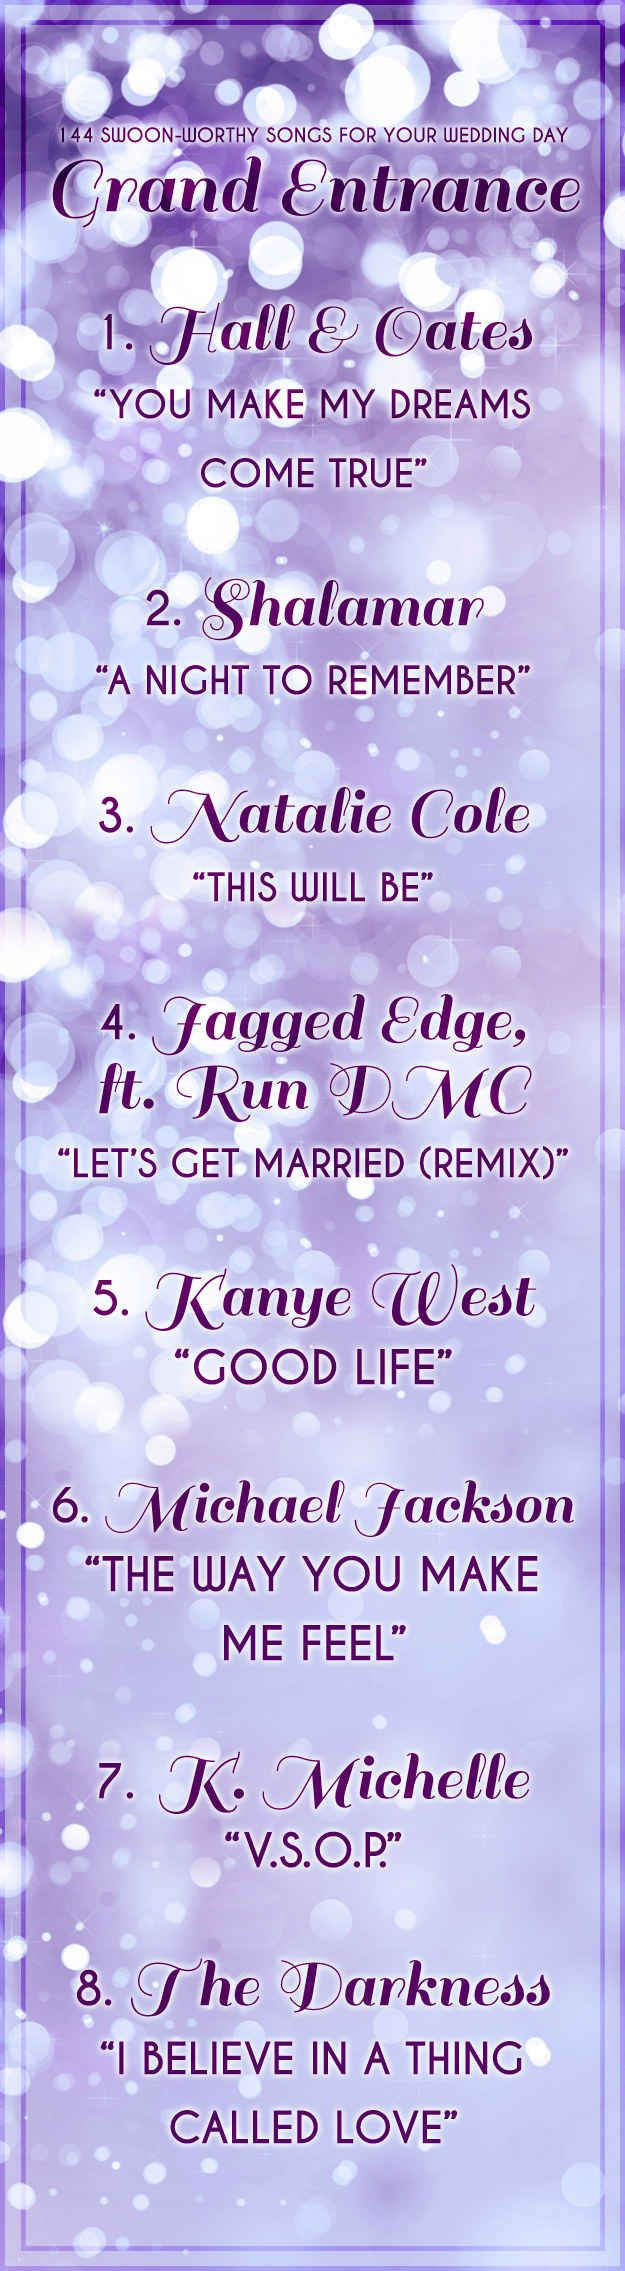 Best 25+ Good wedding songs ideas on Pinterest | Good wedding ...